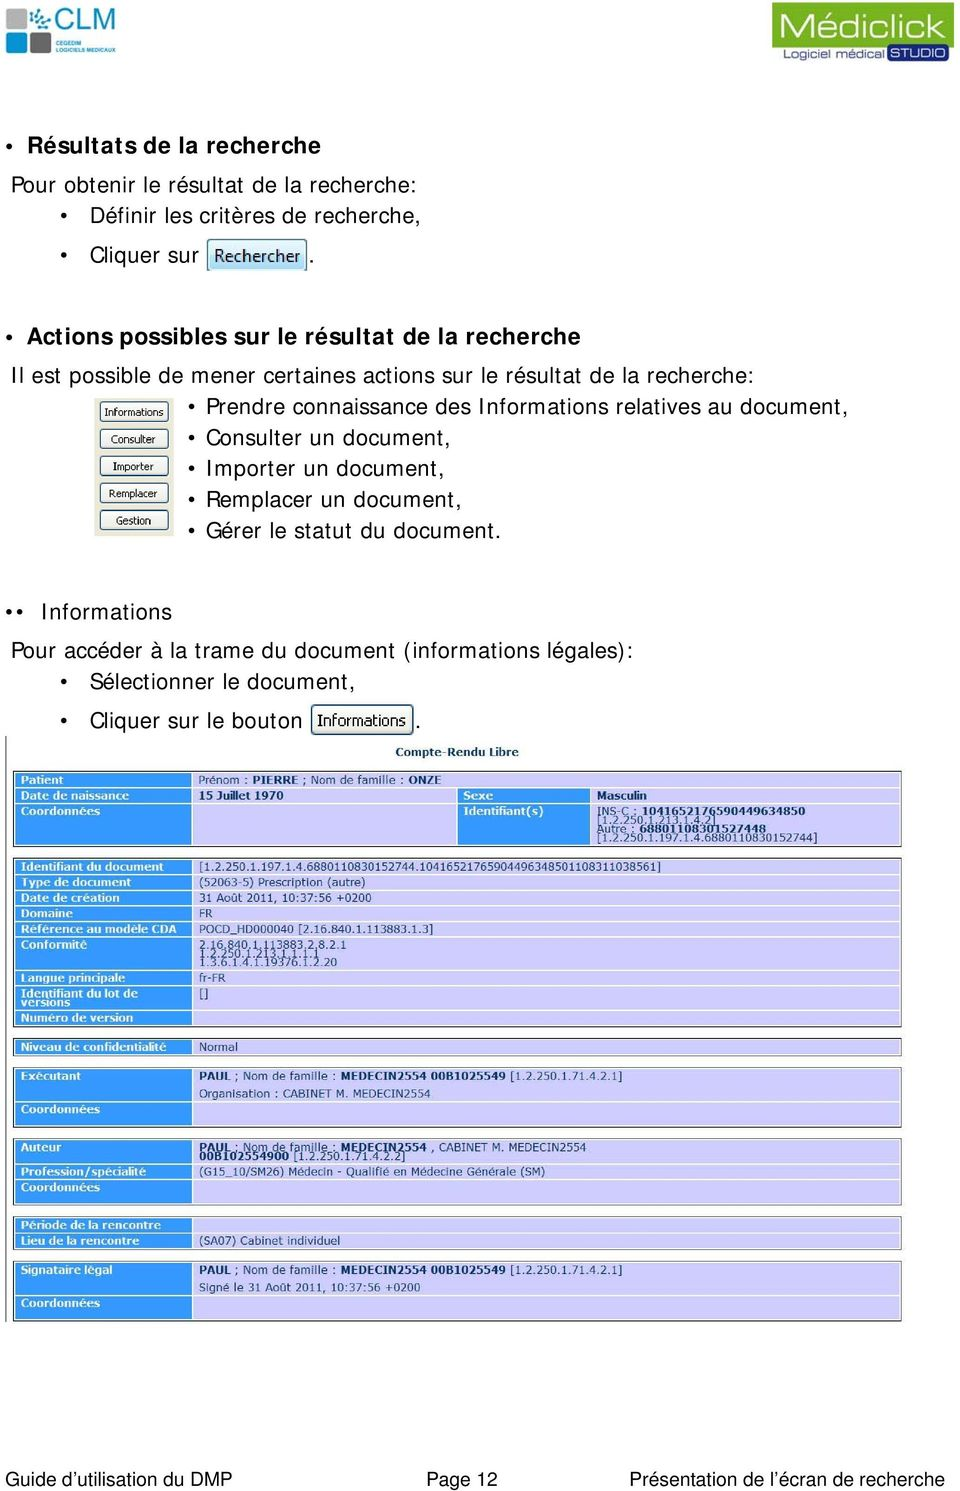 des Informations relatives au document, Consulter un document, Importer un document, Remplacer un document, Gérer le statut du document.